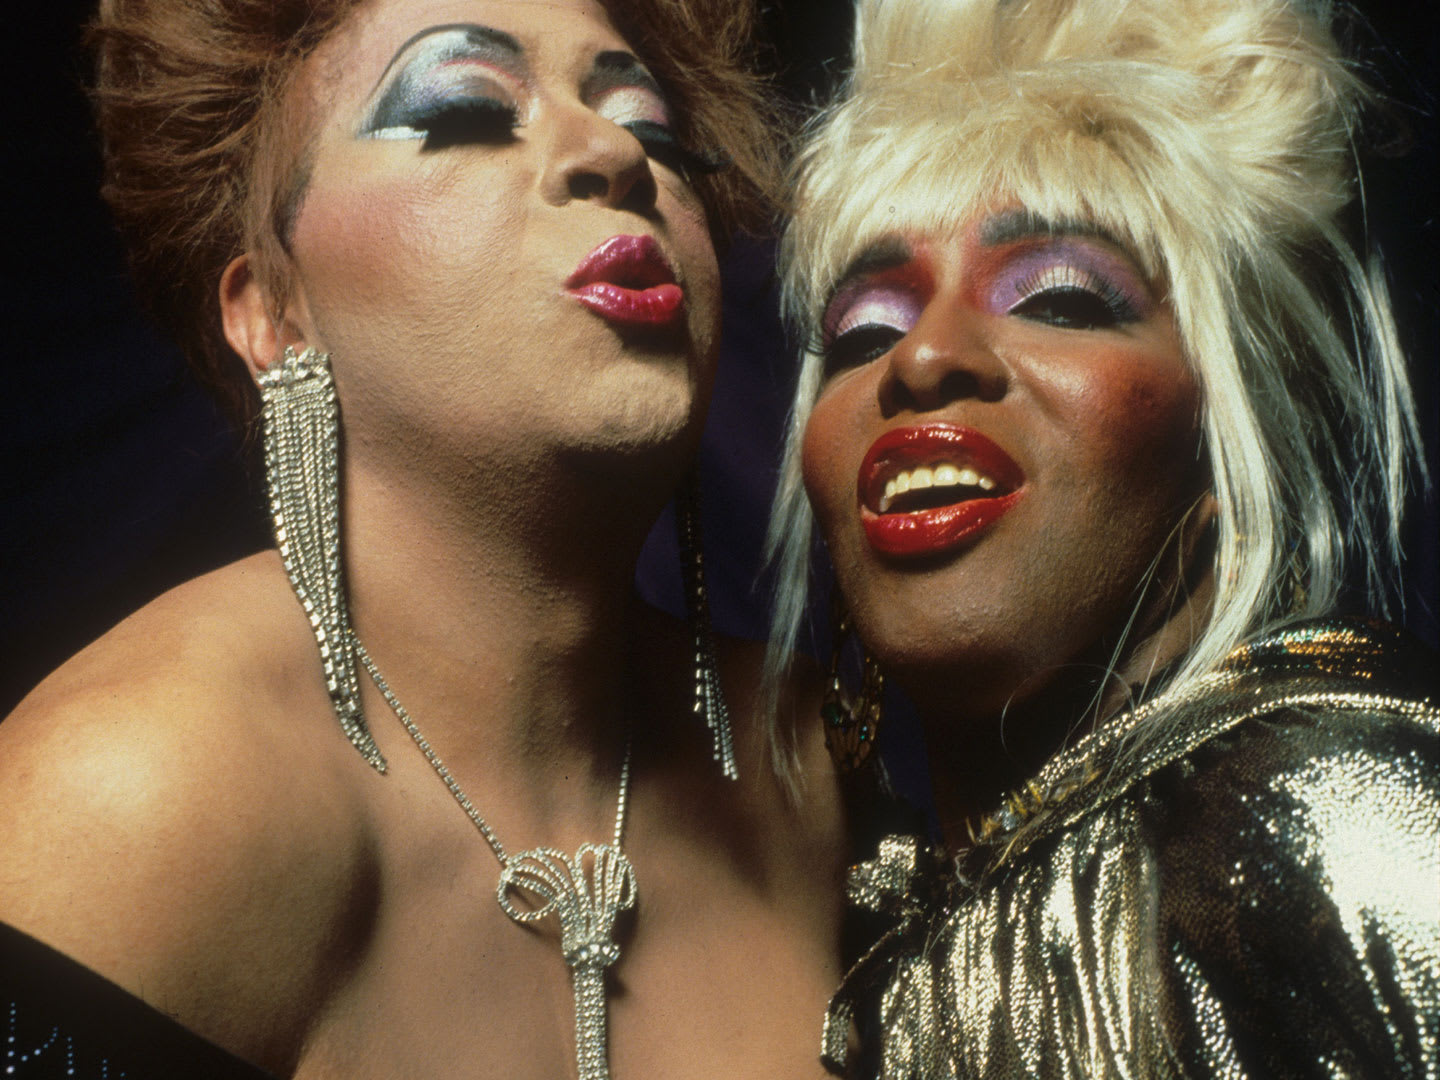 Two drag queens.